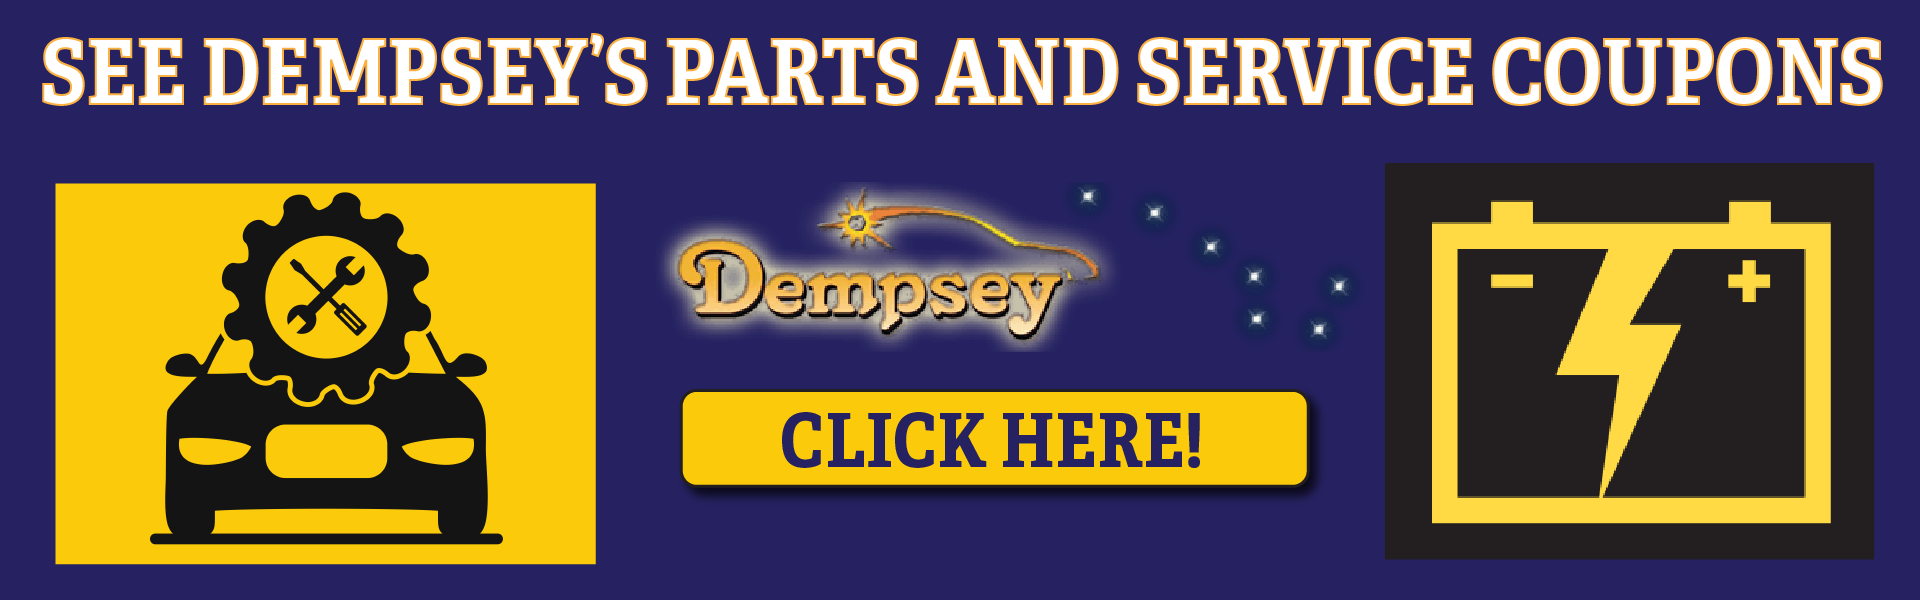 dempsey dodge dealer in dwight illinois